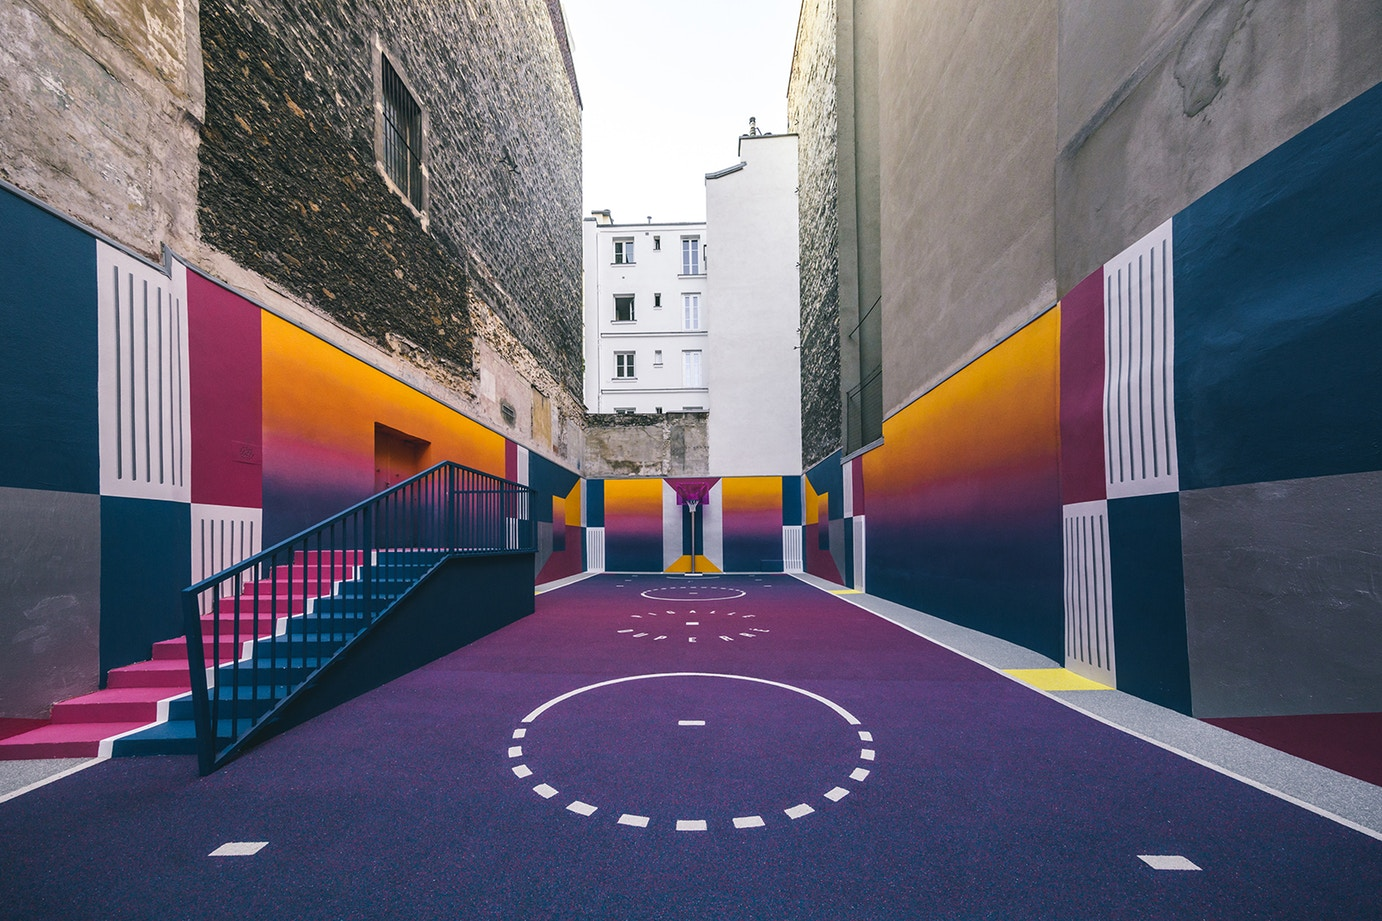 http-%2F%2Fhypebeast.com%2Fimage%2F2017%2F06%2Fpigalle-latest-basketball-court-design-eclectic-colorful-navy-purple-yellow-6.jpg